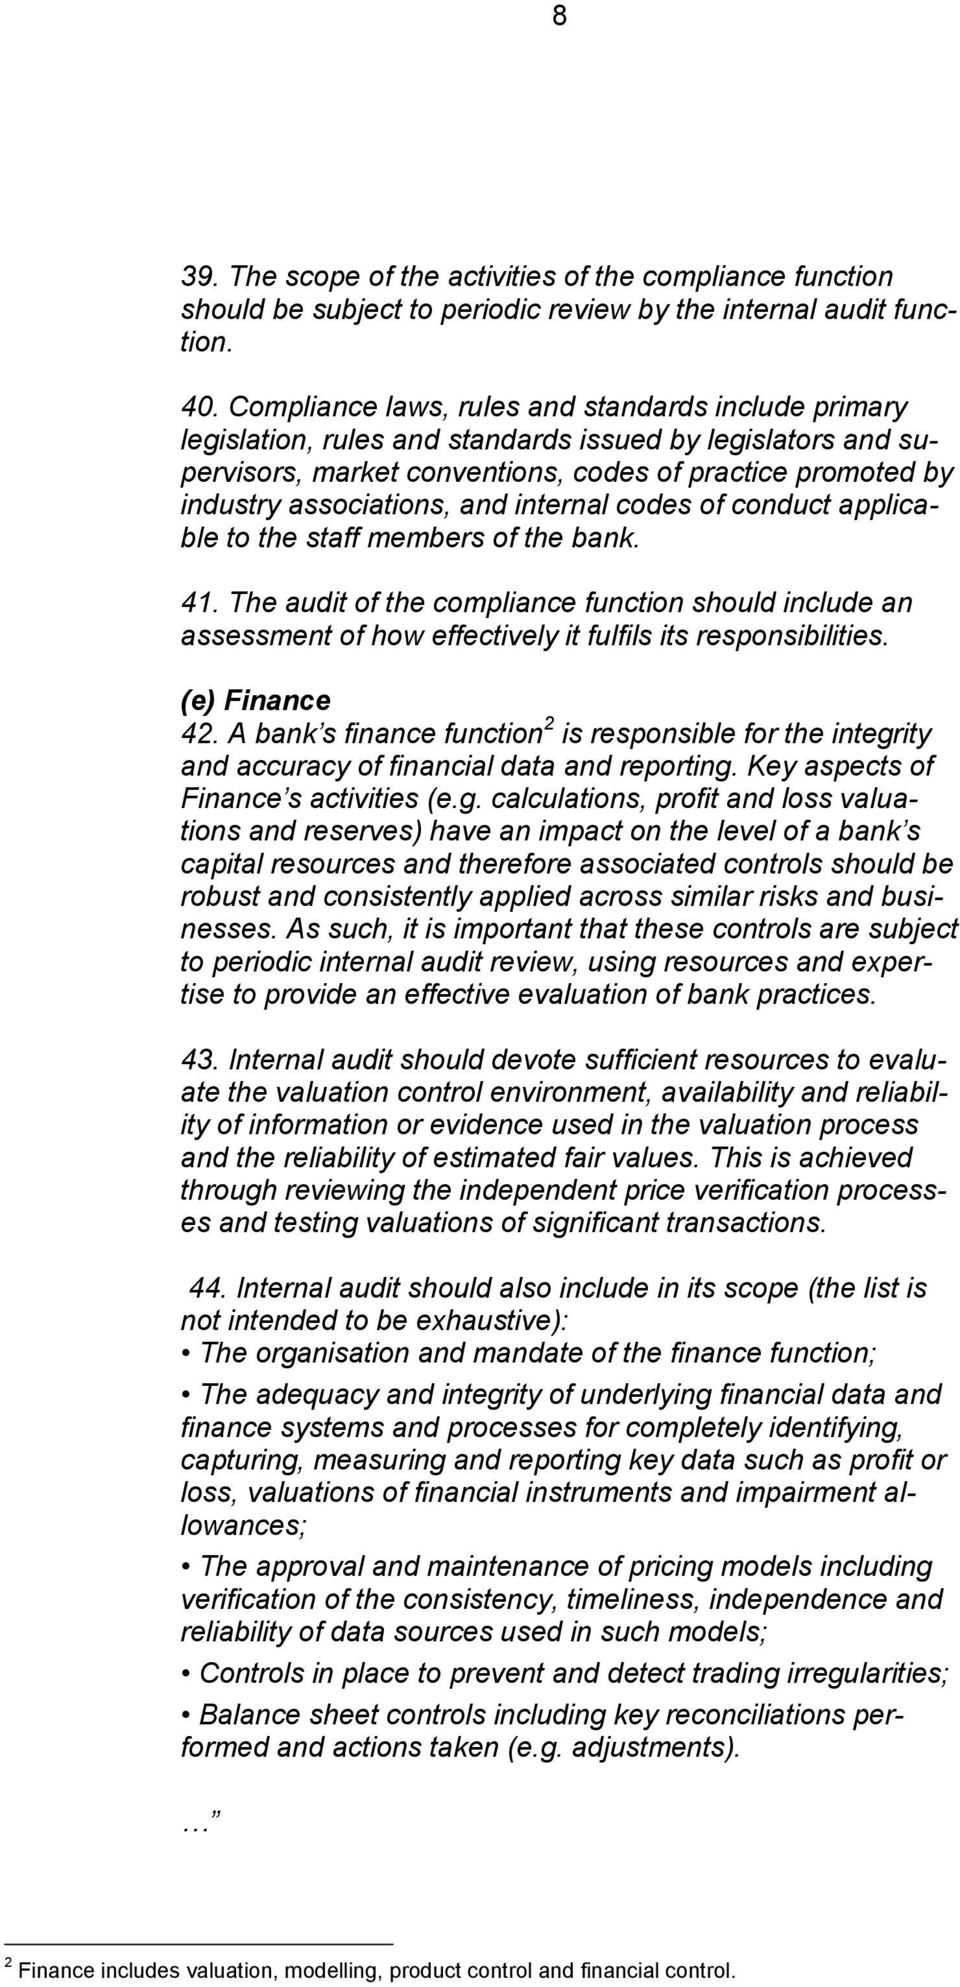 and internal codes of conduct applicable to the staff members of the bank. 41. The audit of the compliance function should include an assessment of how effectively it fulfils its responsibilities.